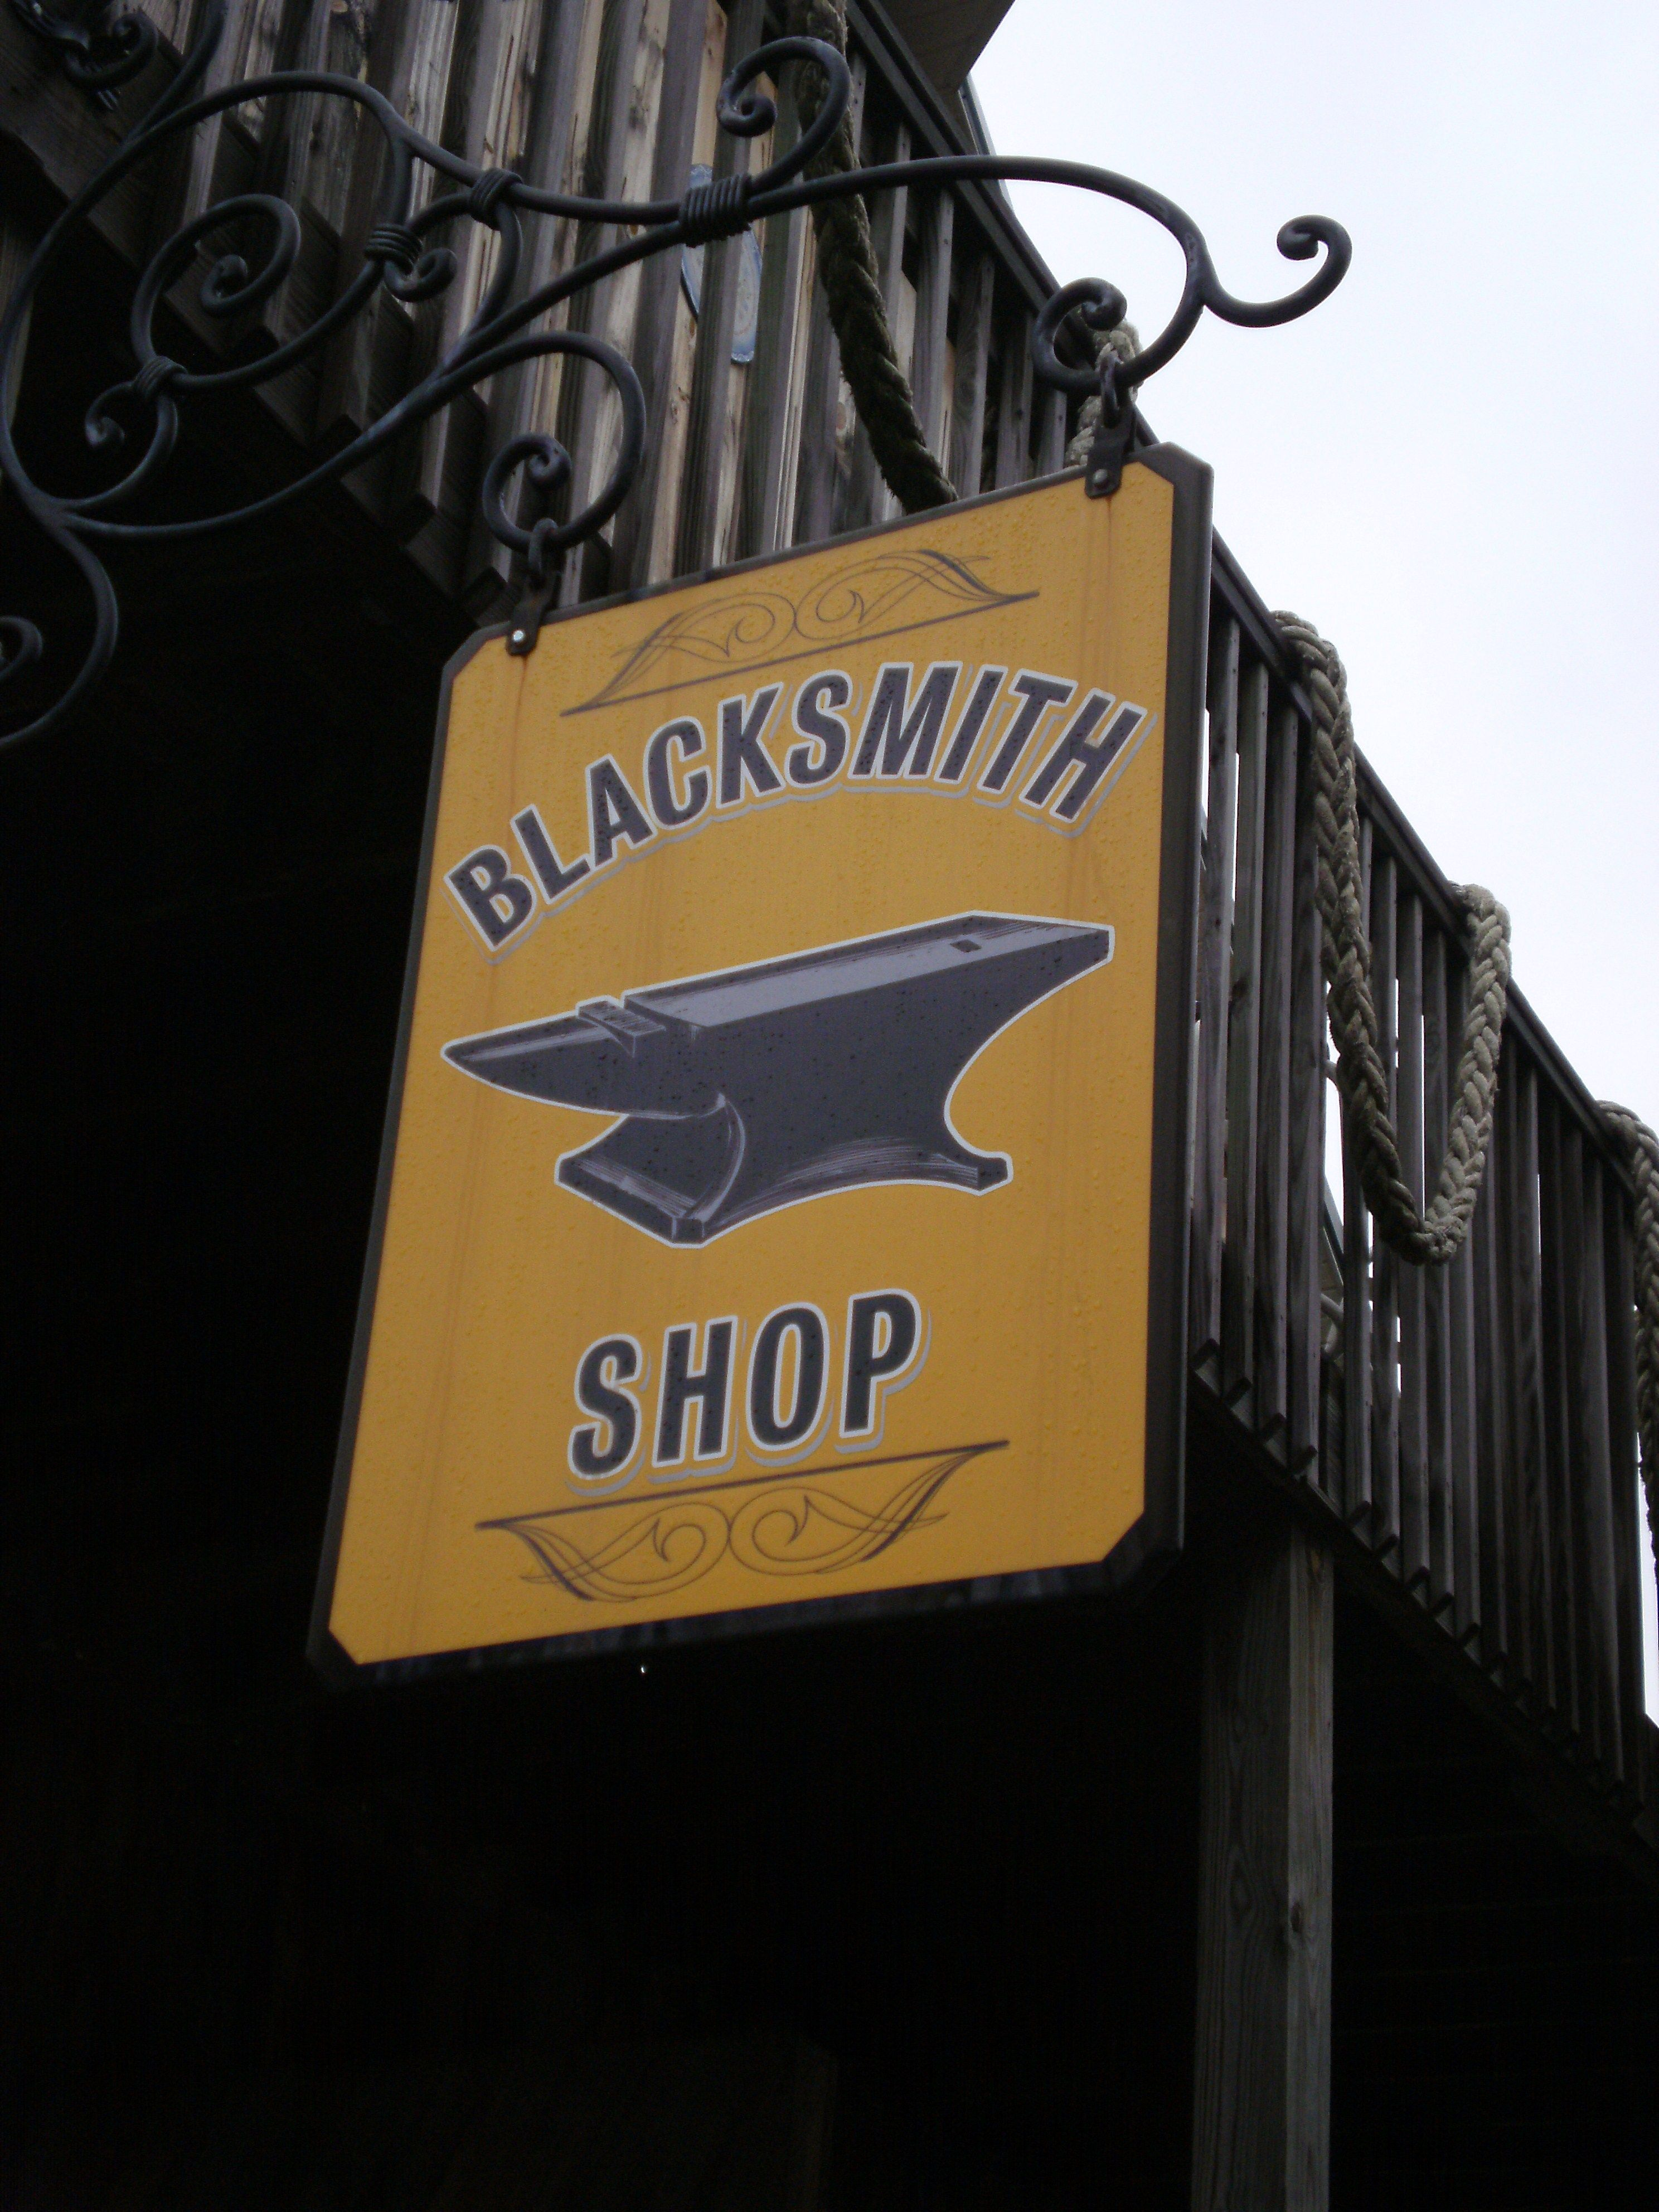 d sign shop images for colonial blacksmith shop signs pinterest